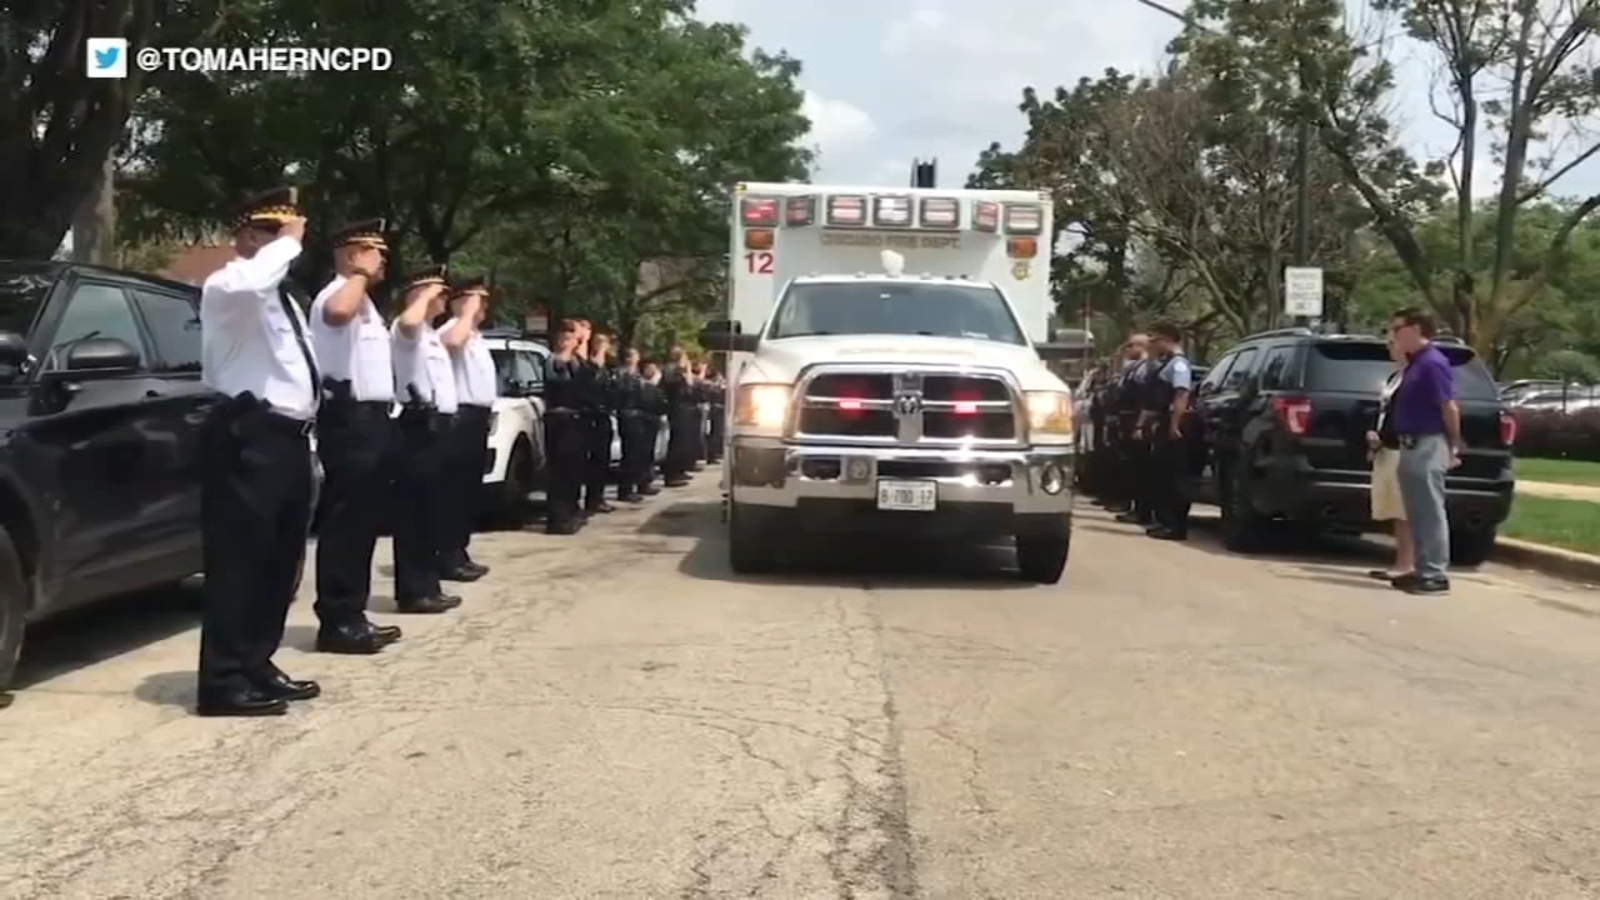 Chicago police officer dies by apparent suicide